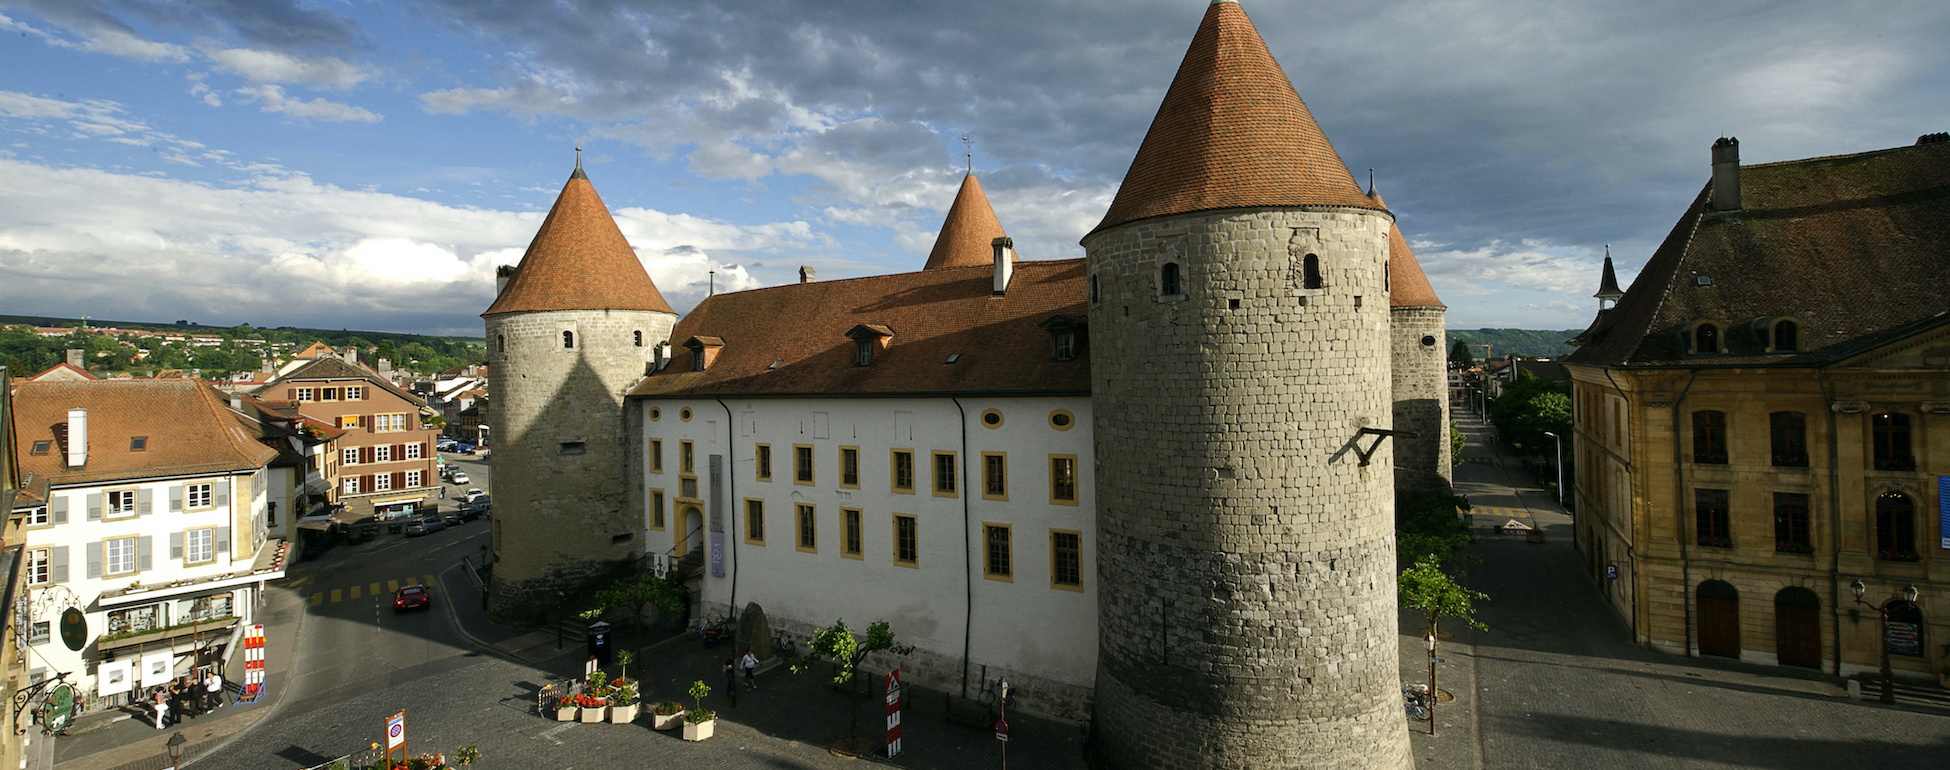 Castle of Yverdon